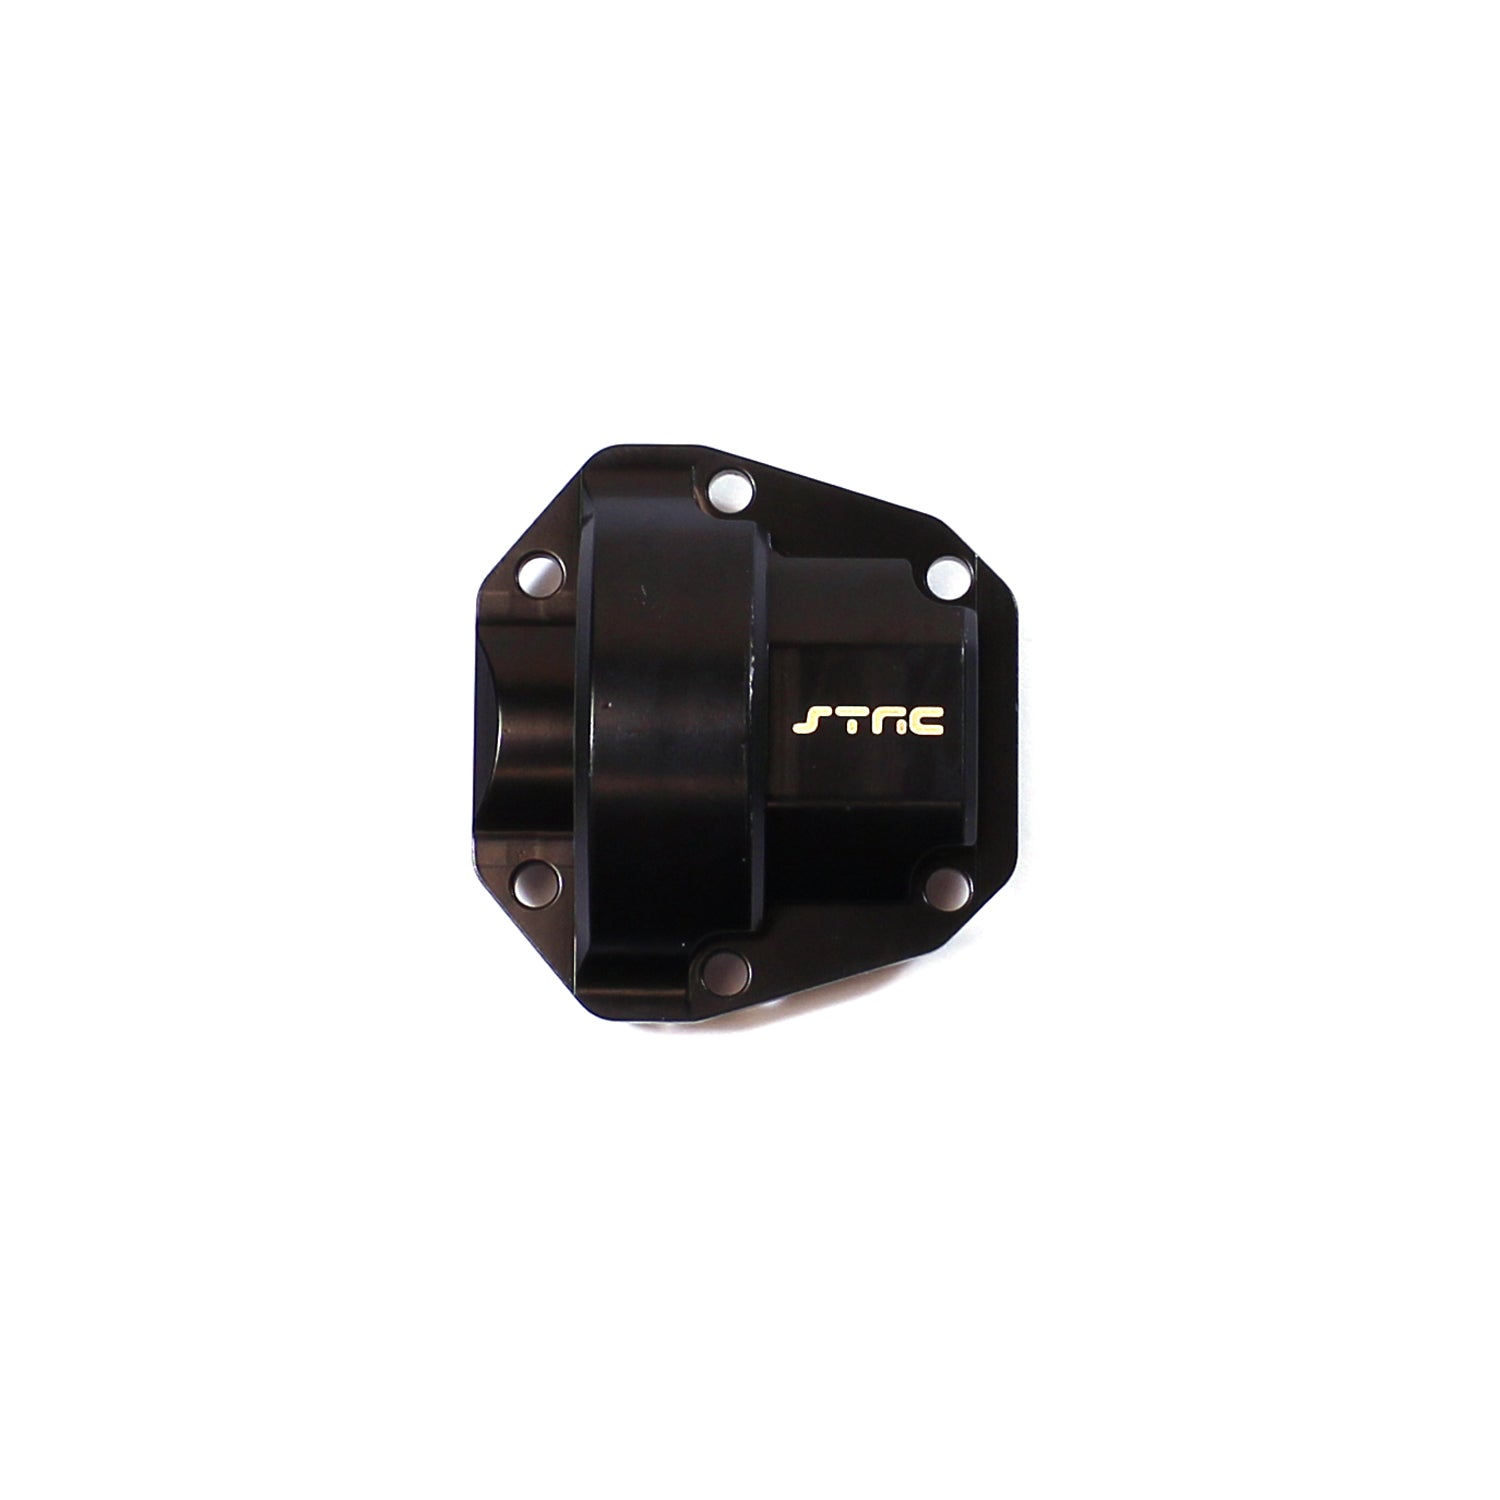 ST Racing Concepts Brass Front or Rear Axle Diff Cover, for Venture, CNC Machined, Black, (2pcs) STRSTH116866BR